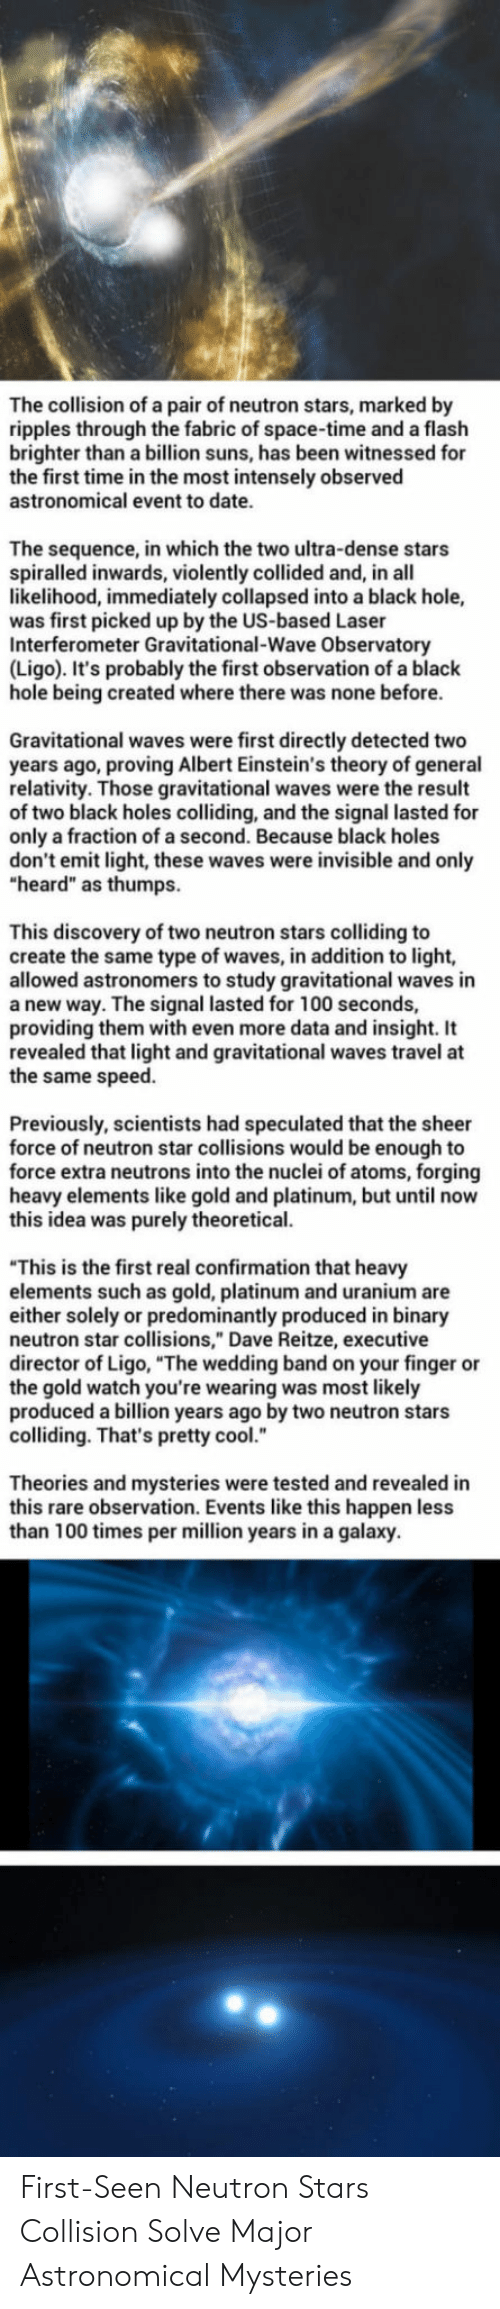 """neutrons: The collision of a pair of neutron stars, marked by  ripples through the fabric of space-time and a flaslh  brighter than a billion suns, has been witnessed for  the first time in the most intensely observed  astronomical event to date.  The sequence, in which the two ultra-dense stars  spiralled inwards, violently collided and, in all  likelihood, immediately collapsed into a black hole,  was first picked up by the US-based Laser  Interferometer Gravitational-Wave Observatory  (Ligo). It's probably the first observation of a black  hole being created where there was none before.  Gravitational waves were first directly detected two  years ago, proving Albert Einstein's theory of general  relativity. Those gravitational waves were the result  of two black holes colliding, and the signal lasted for  only a fraction of a second. Because black holes  don't emit light, these waves were invisible and only  """"heard"""" as thumps  This discovery of two neutron stars colliding to  create the same type of waves, in addition to light,  allowed astronomers to study gravitational waves in  a new way. The signal lasted for 100 seconds,  providing them with even more data and insight. It  revealed that light and gravitational waves travel at  the same speed.  Previously, scientists had speculated that the sheer  force of neutron star collisions would be enough to  force extra neutrons into the nuclei of atoms, forging  heavy elements like gold and platinum, but until now  this idea was purely theoretical.  """"This is the first real confirmation that heavy  elements such as gold, platinum and uranium are  either solely or predominantly produced in binary  neutron star collisions,"""" Dave Reitze, executive  director of Ligo, """"The wedding band on your finger or  the gold watch you're wearing was most likely  produced a billion years ago by two neutron stars  colliding. That's pretty cool.  Theories and mysteries were tested and revealed in  this rare observation. Events like this """